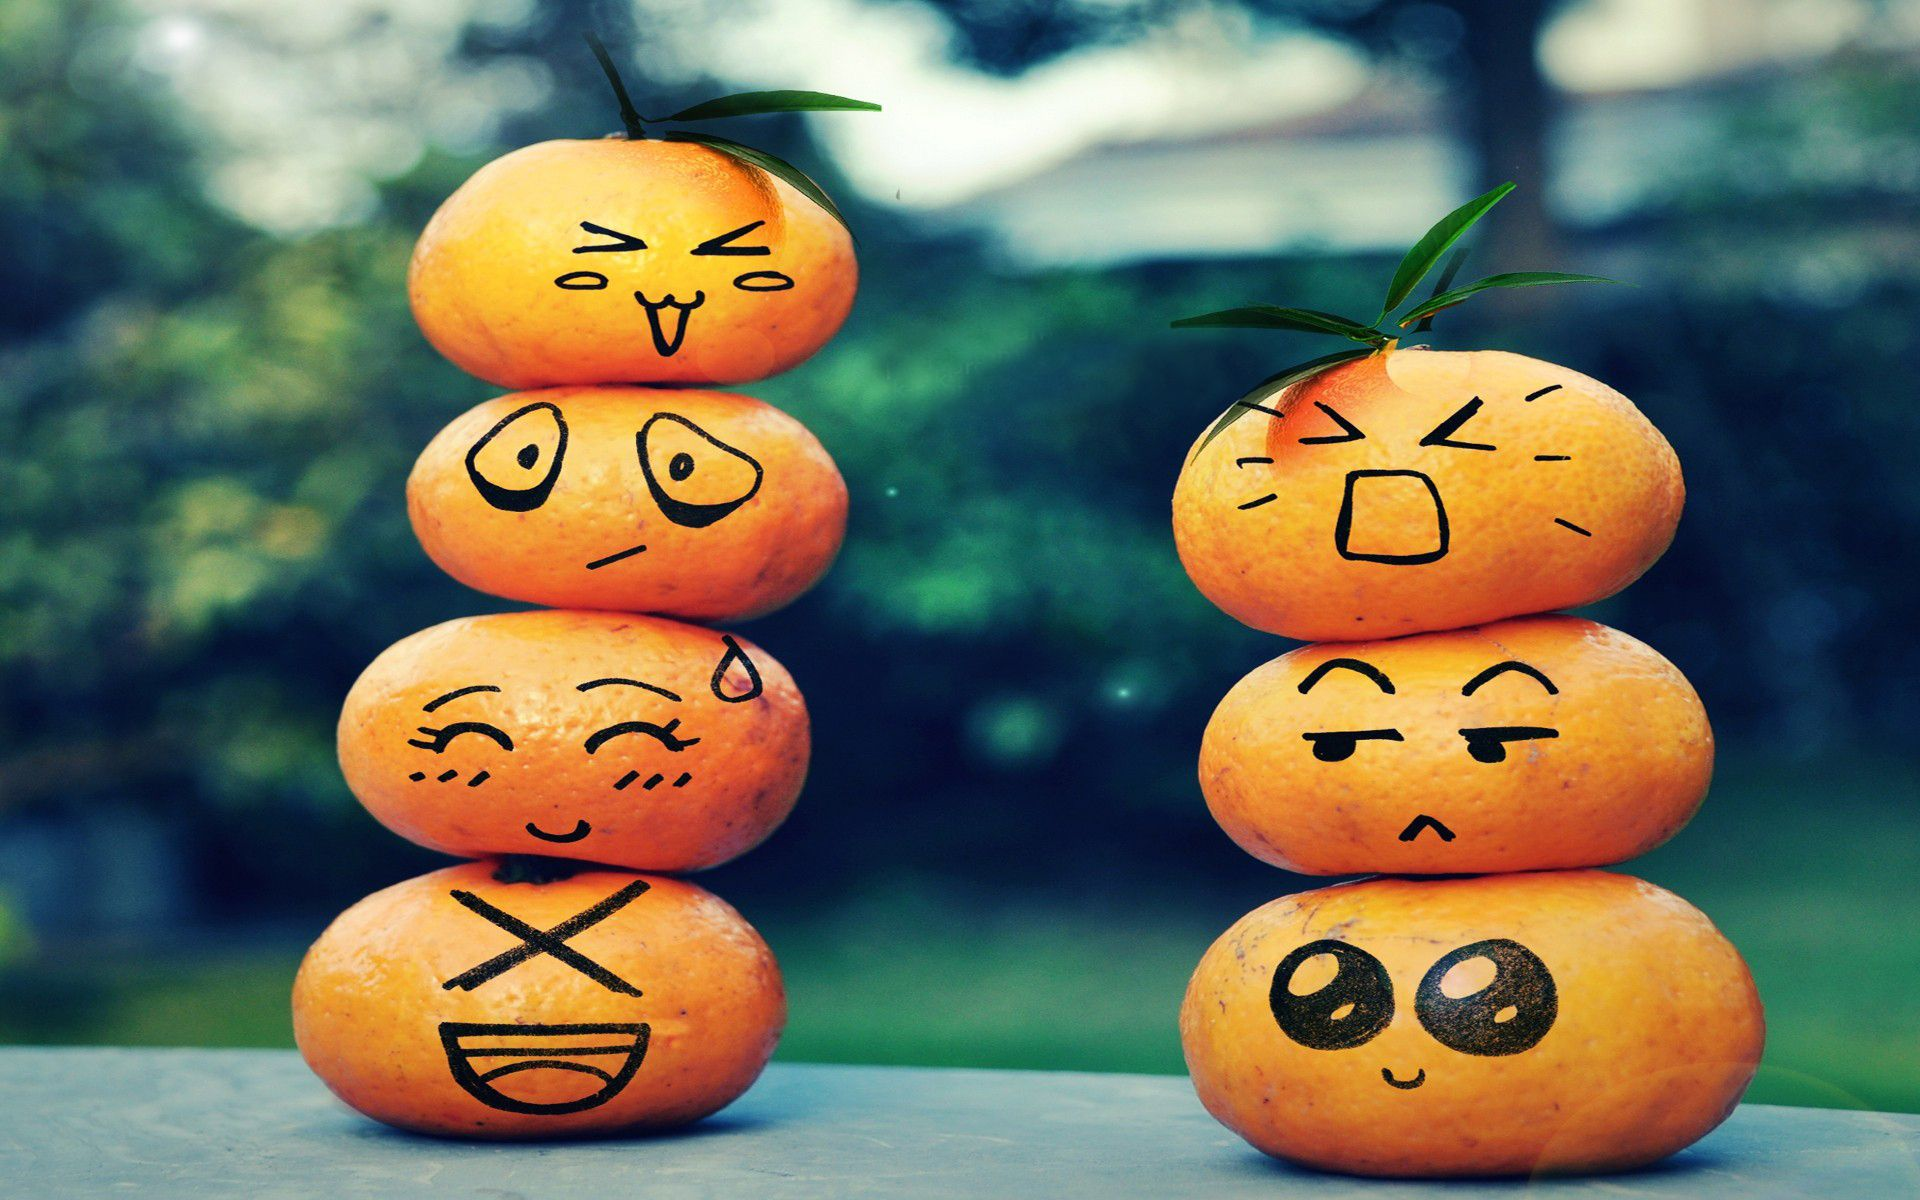 the word halloween or hallowe'en dates to about 1745[27] and is of